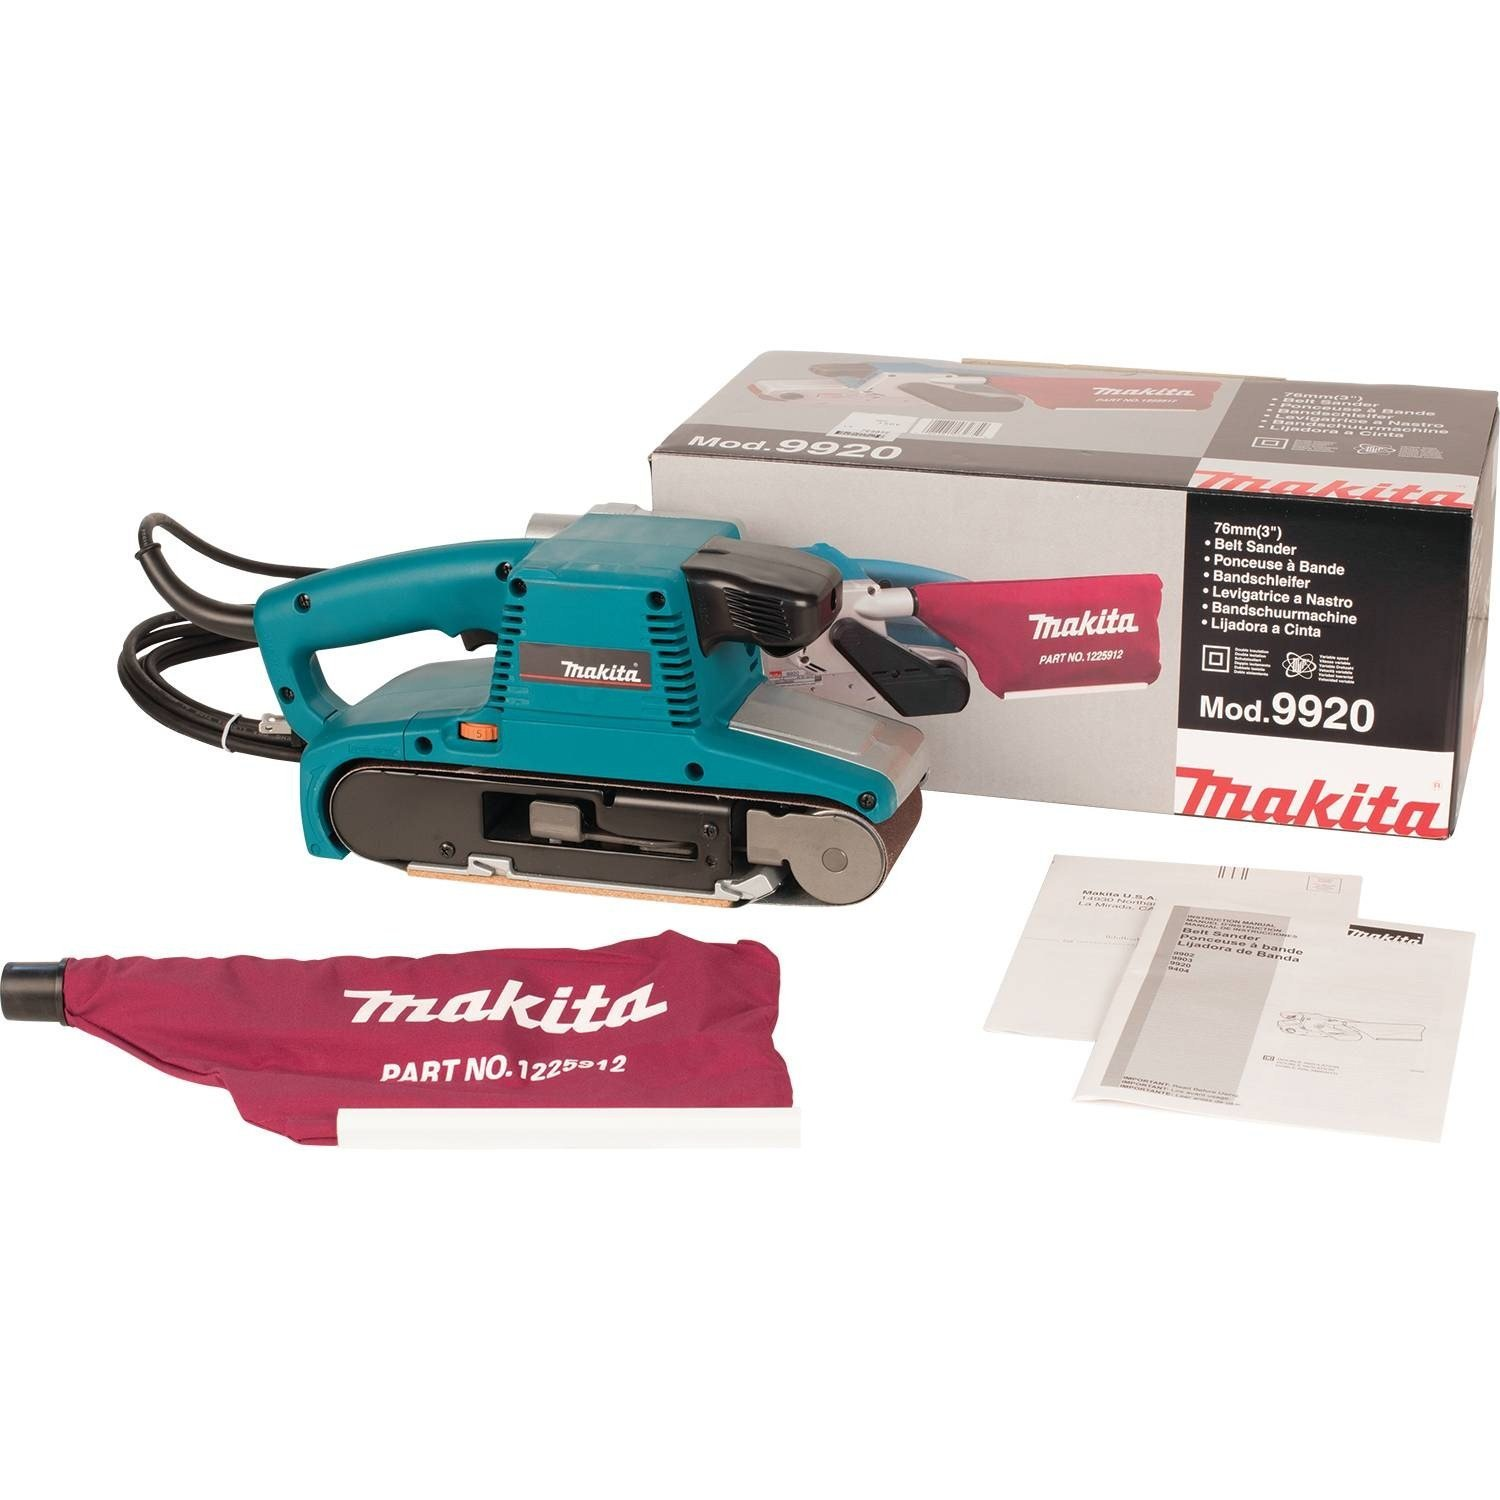 Makita 9920 featured image 7